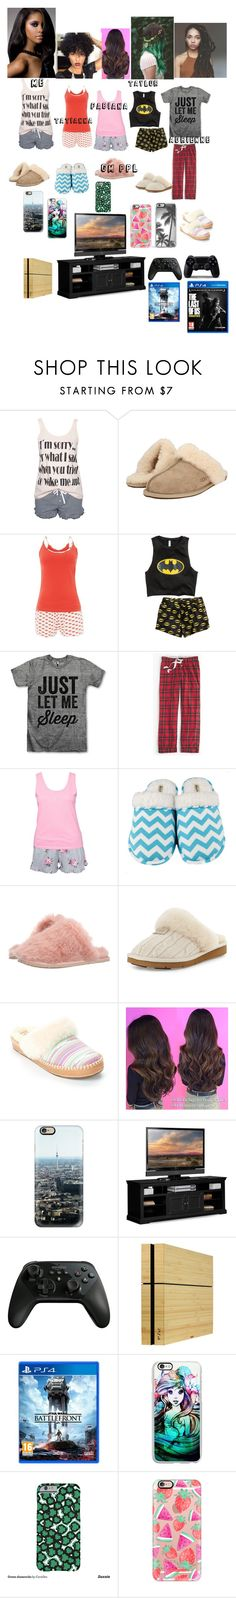 """GOOD MORNING"" by bele6476 ❤ liked on Polyvore featuring Rut&Circle, UGG Australia, Tommy Hilfiger, J.Crew, Hunkemöller, Leisureland, Ted Baker, Casetify, Toast and Sony"